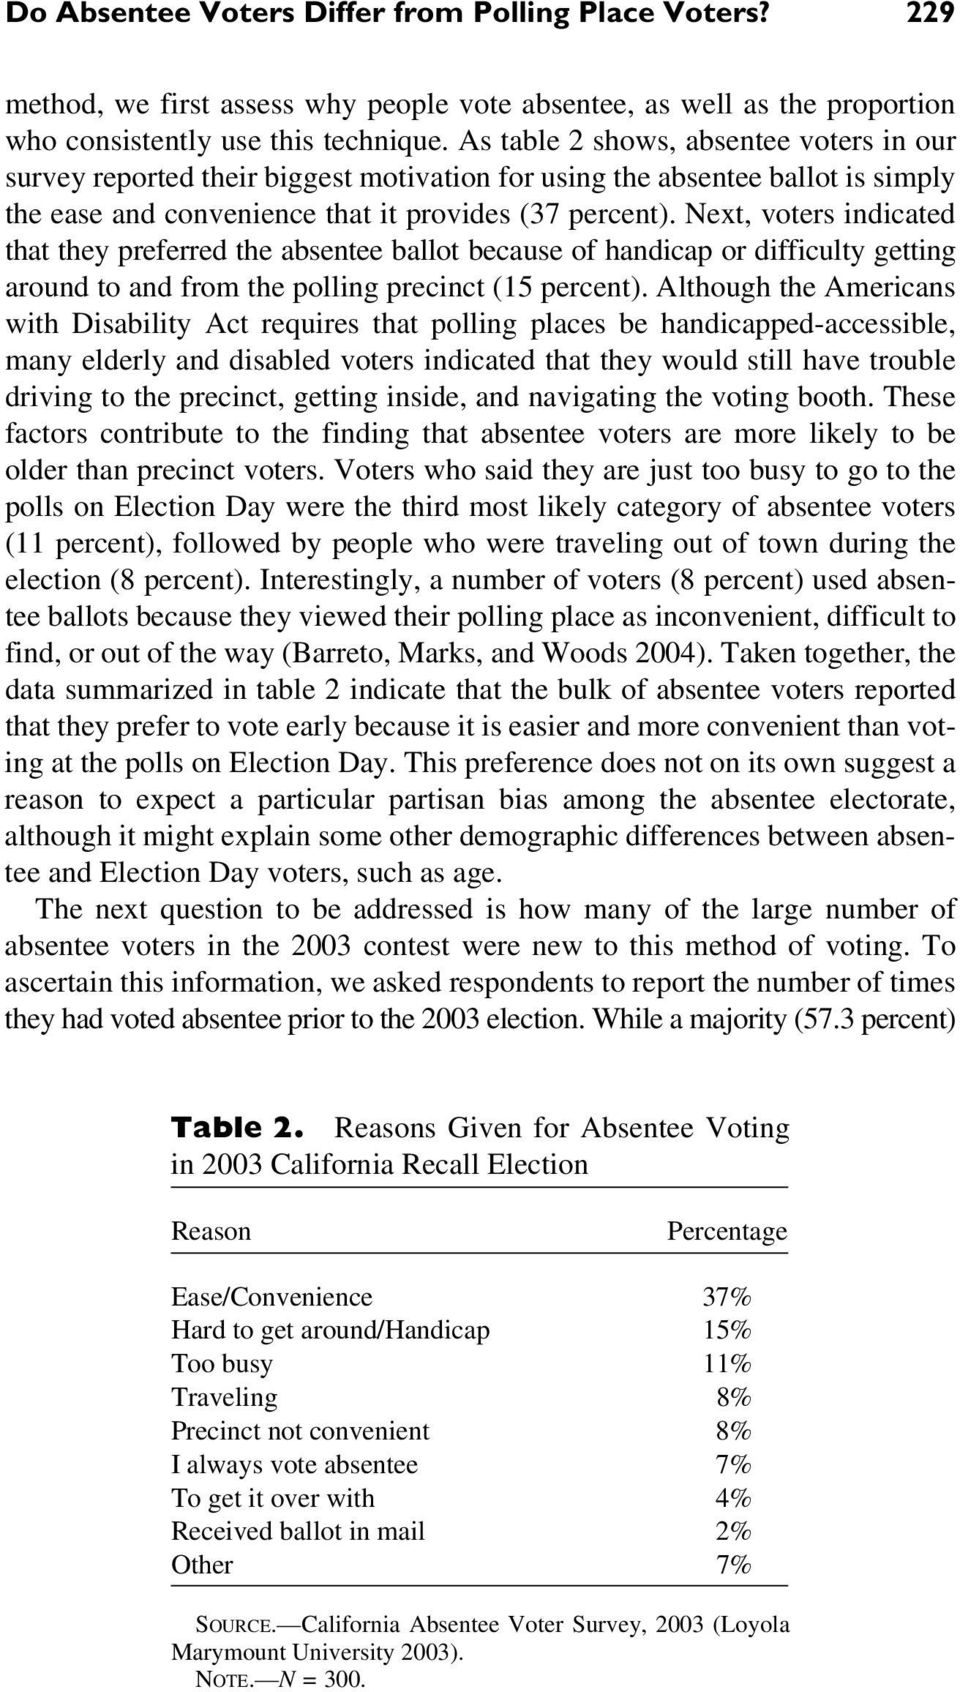 Next, voters indicated that they preferred the absentee ballot because of handicap or difficulty getting around to and from the polling precinct (15 percent).